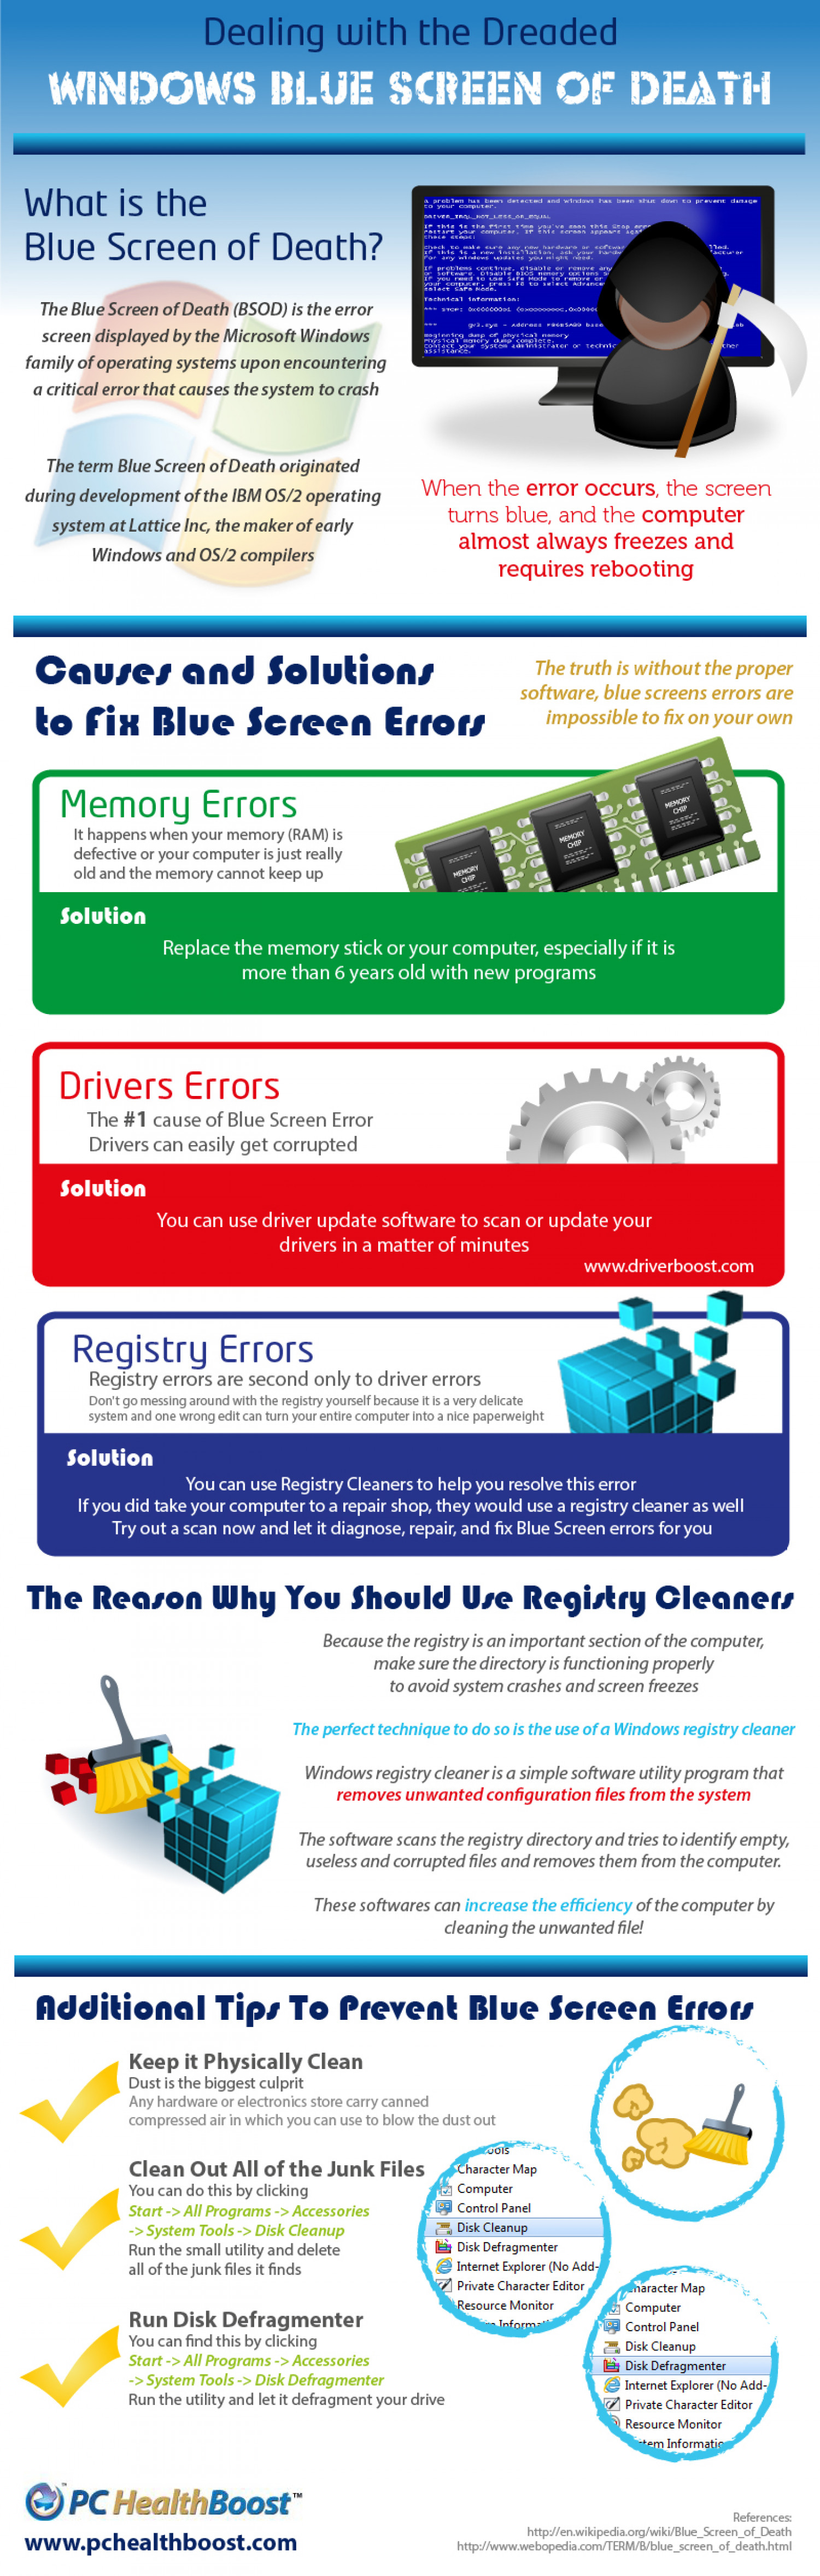 Dealing With the Dreaded Windows Blue Screen of Death Infographic